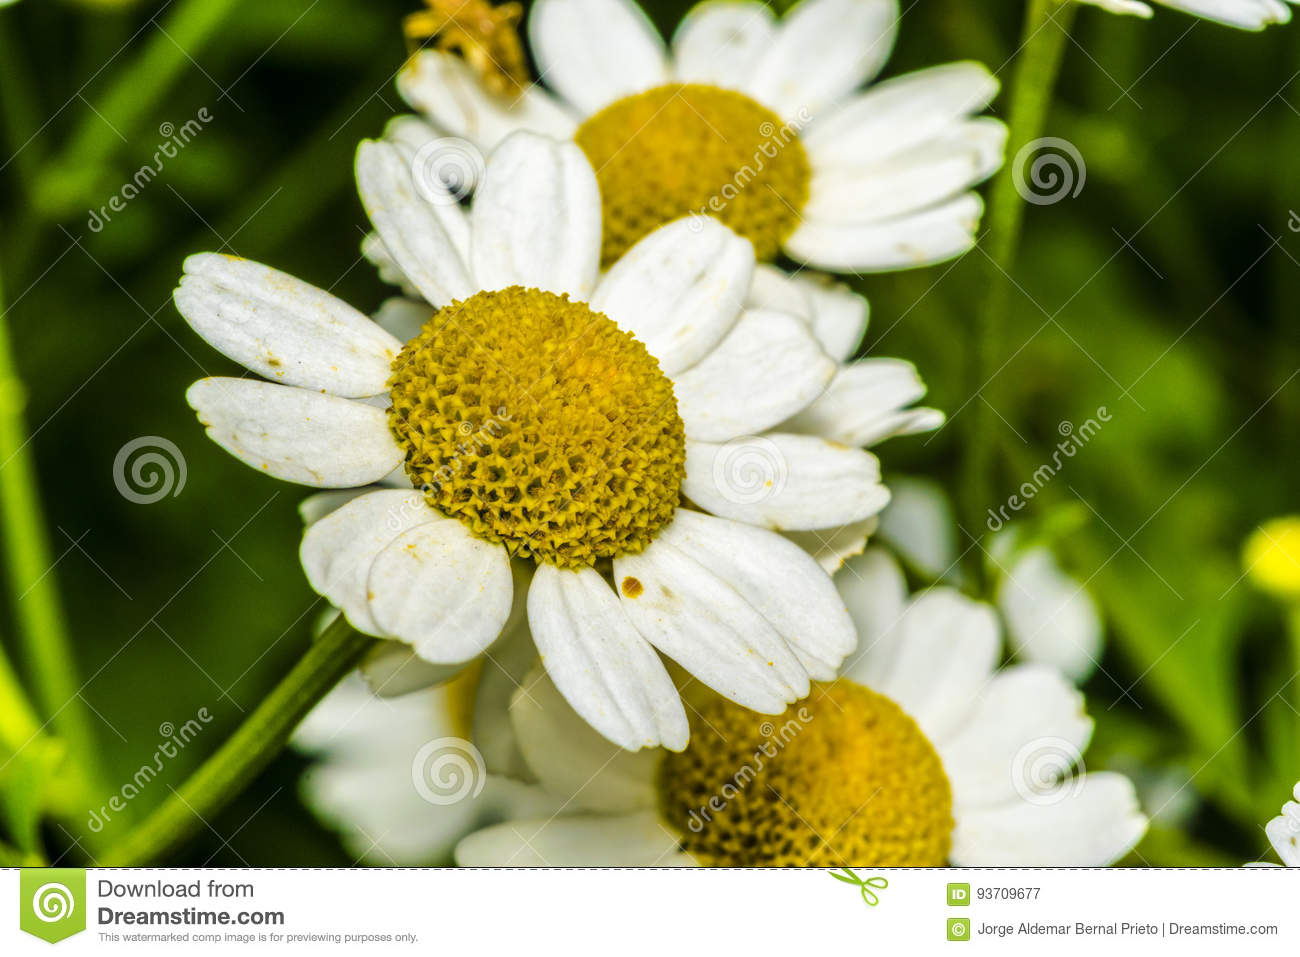 Small daisy flowers in a garden stock image image of natural small daisy flowers in a garden izmirmasajfo